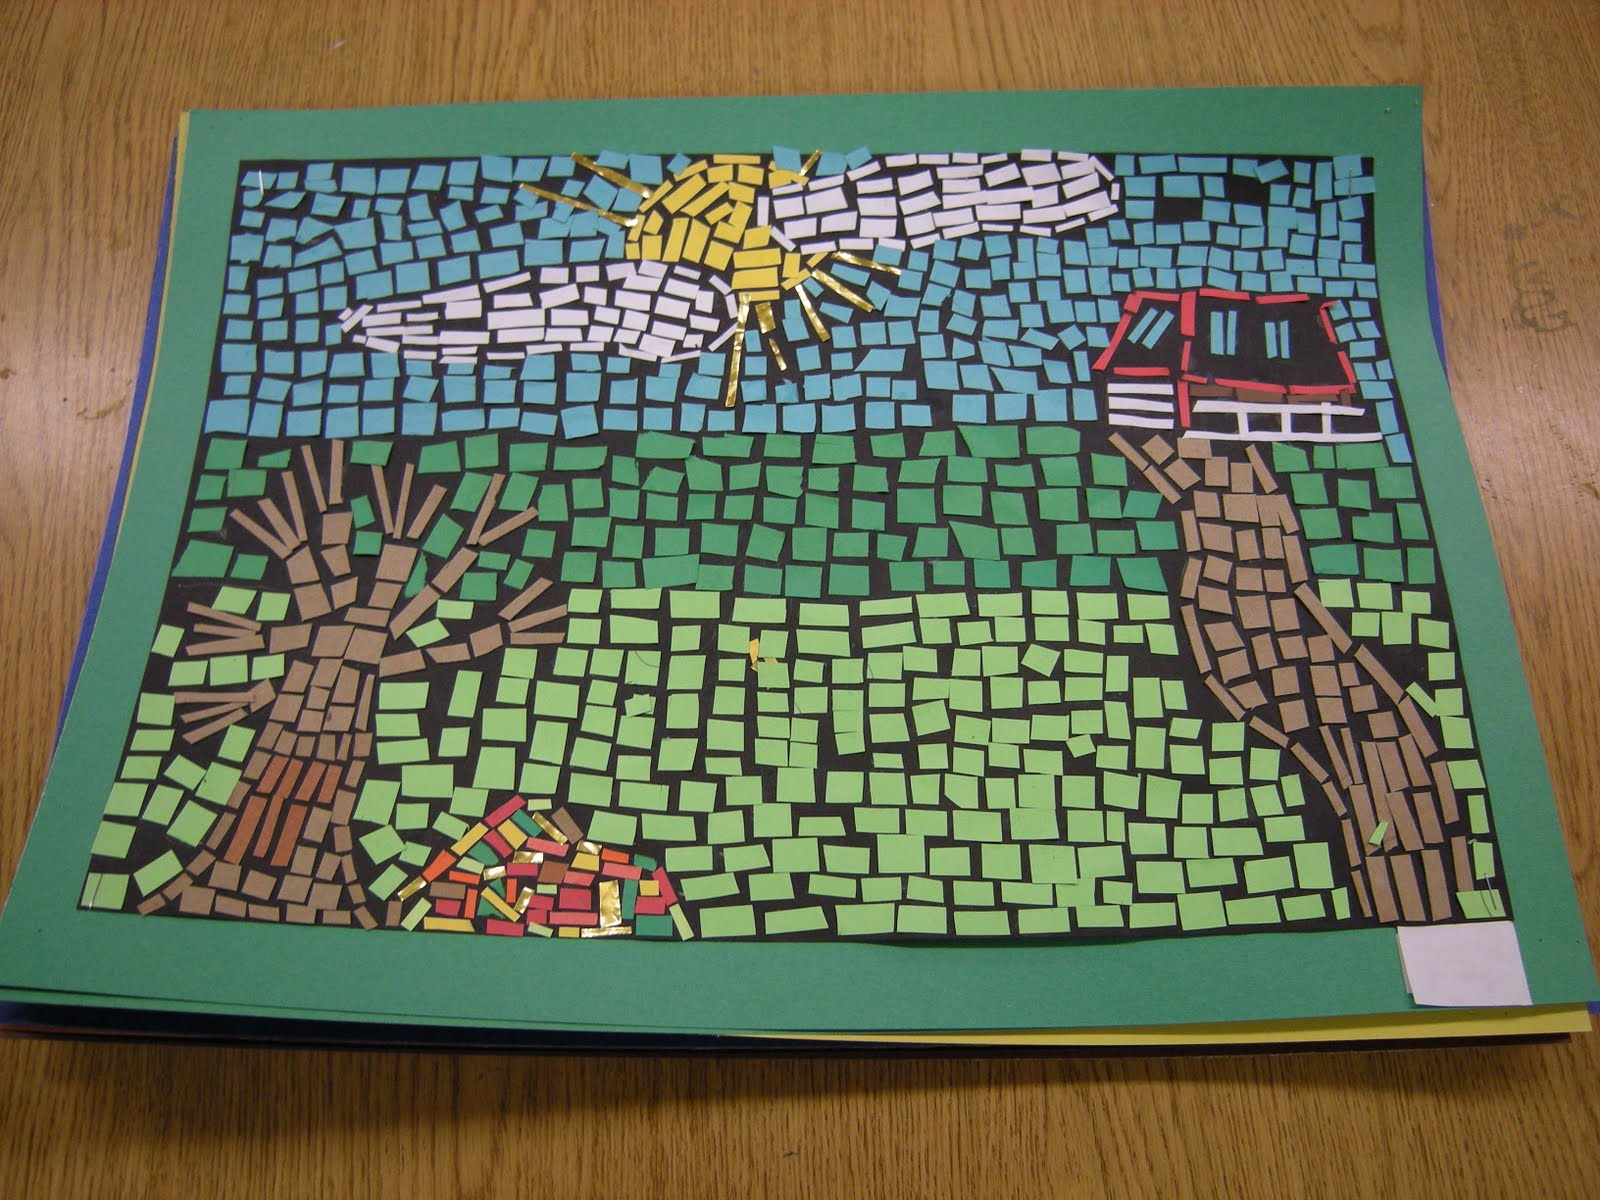 mosaics paper 2017-07-08 10:00:00 2017-07-08 12:00:00 america/chicago family workshops: paper mosaics leap into learning together and discover art in two different ways, by looking and making.